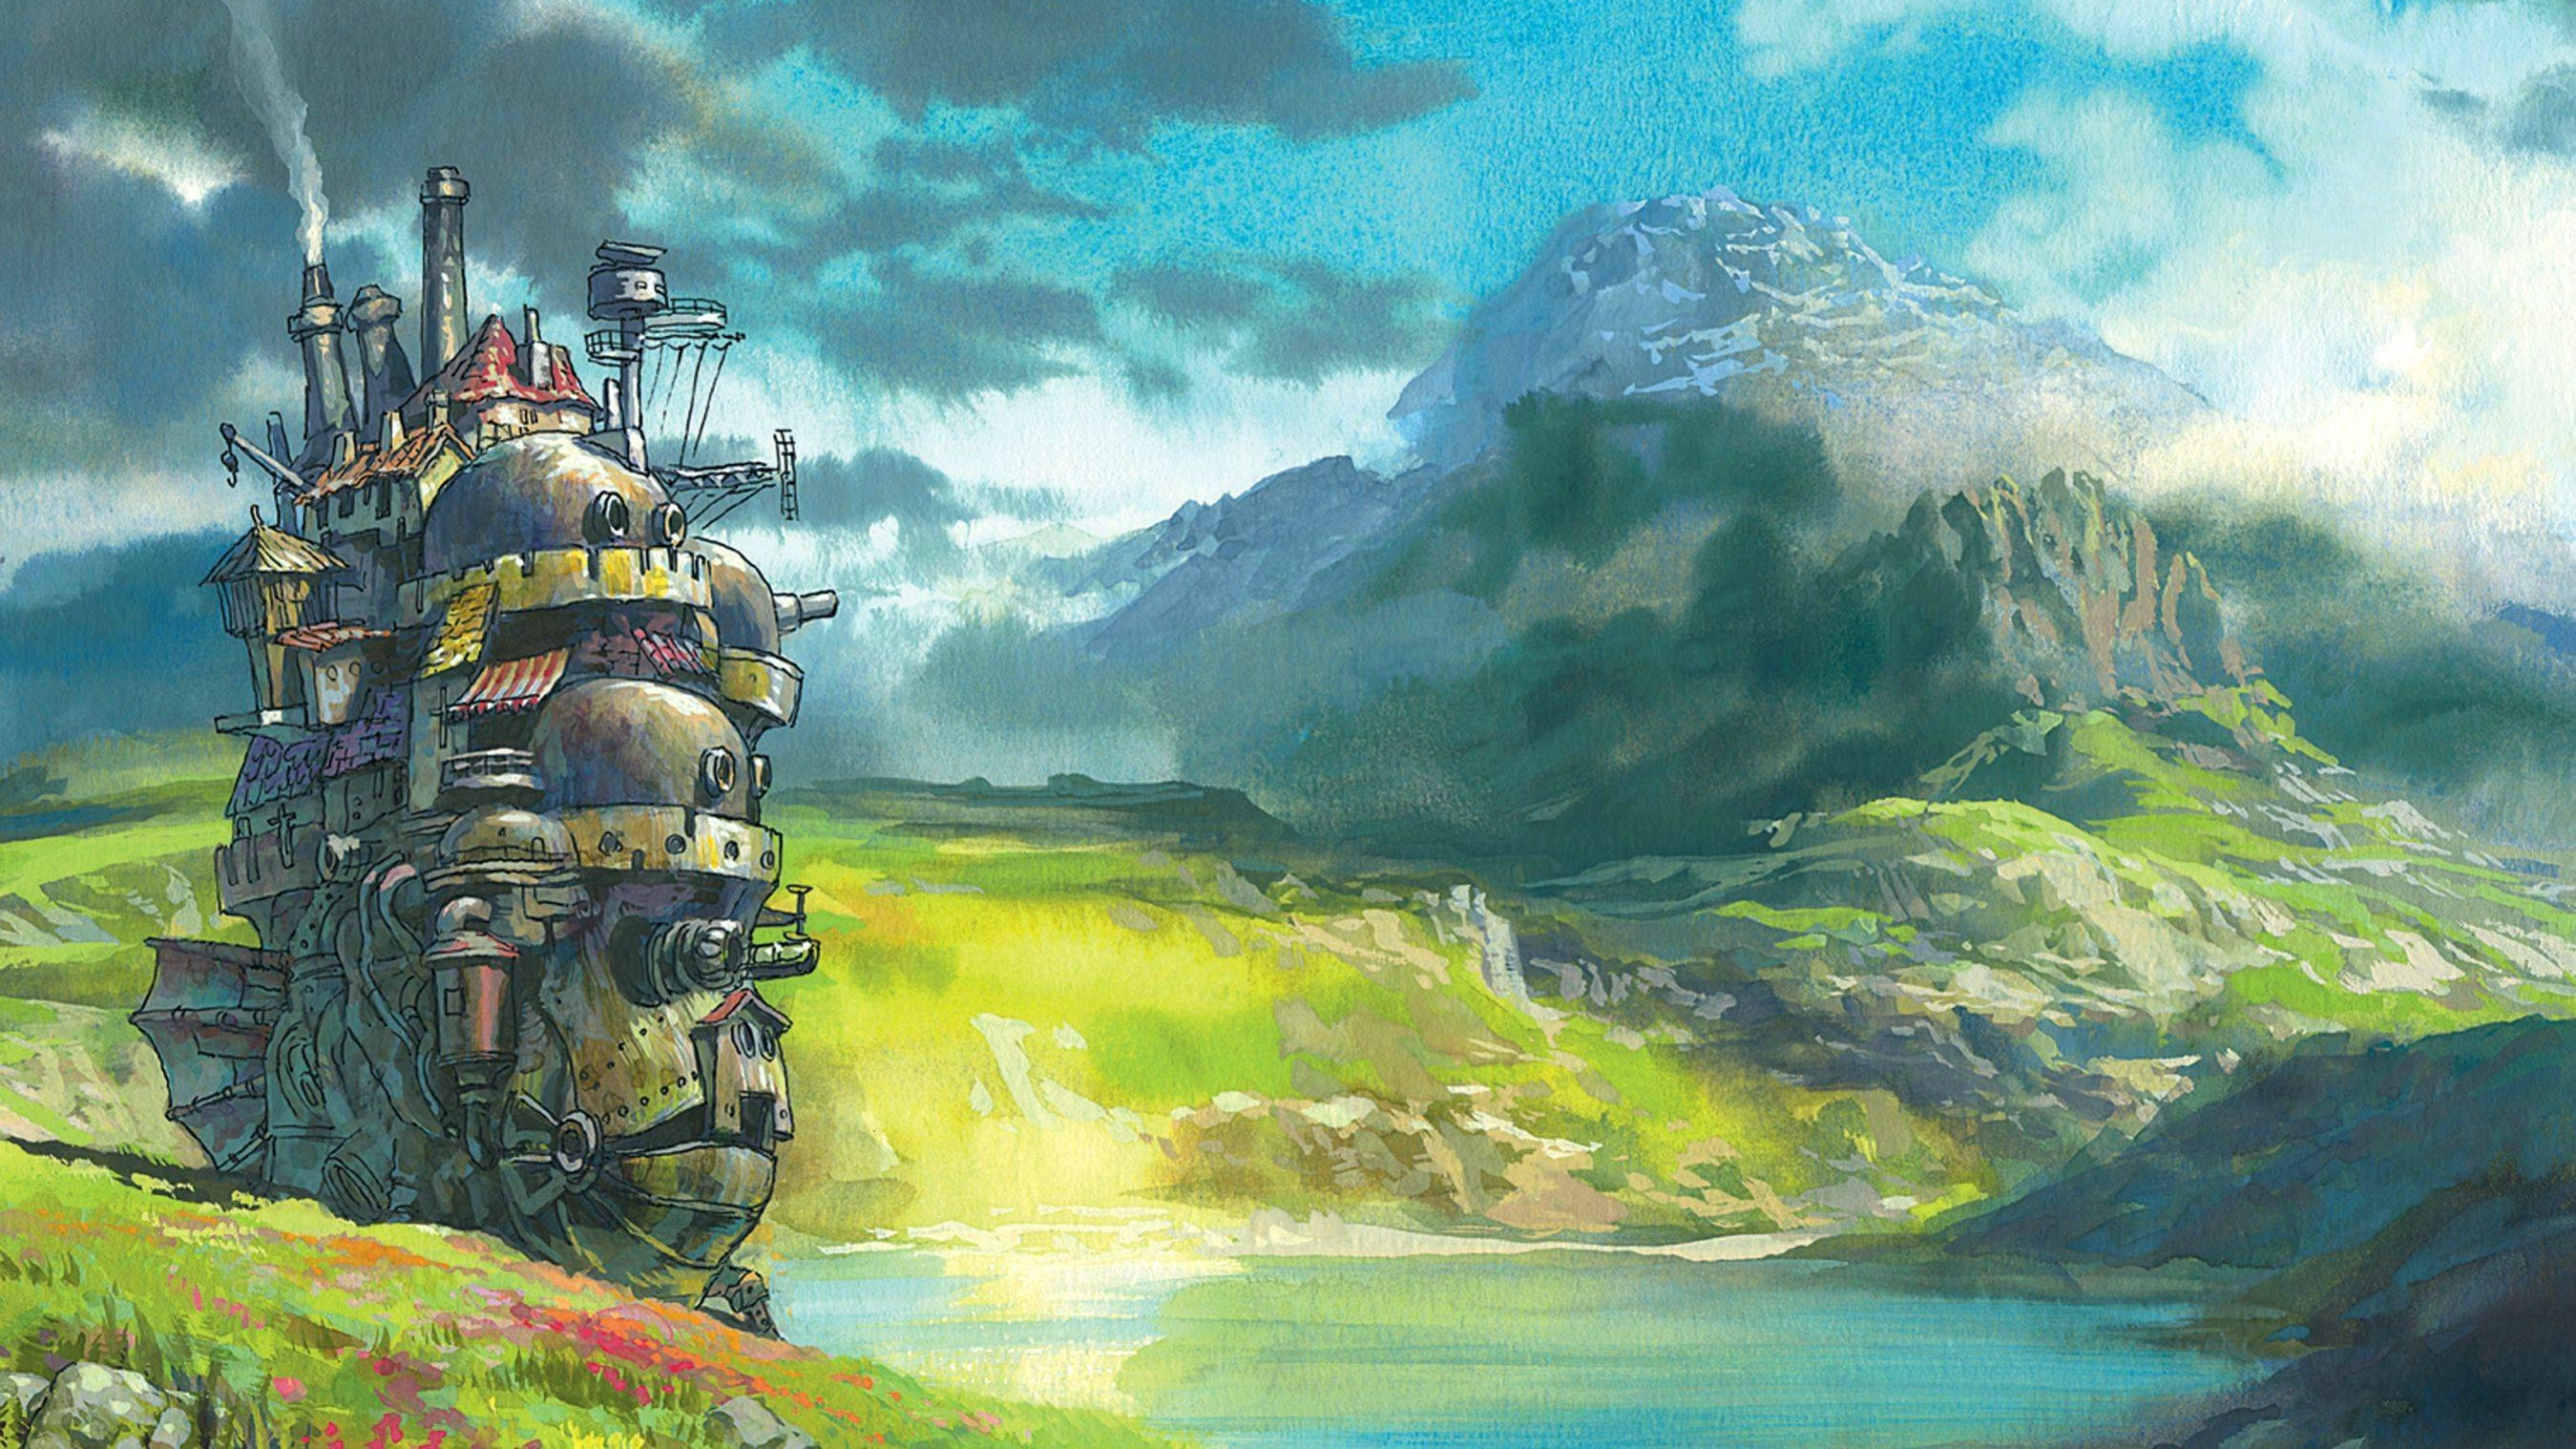 Hd Ghibli Wallpaper 1080: 17 Studio Ghibli HD Wallpapers